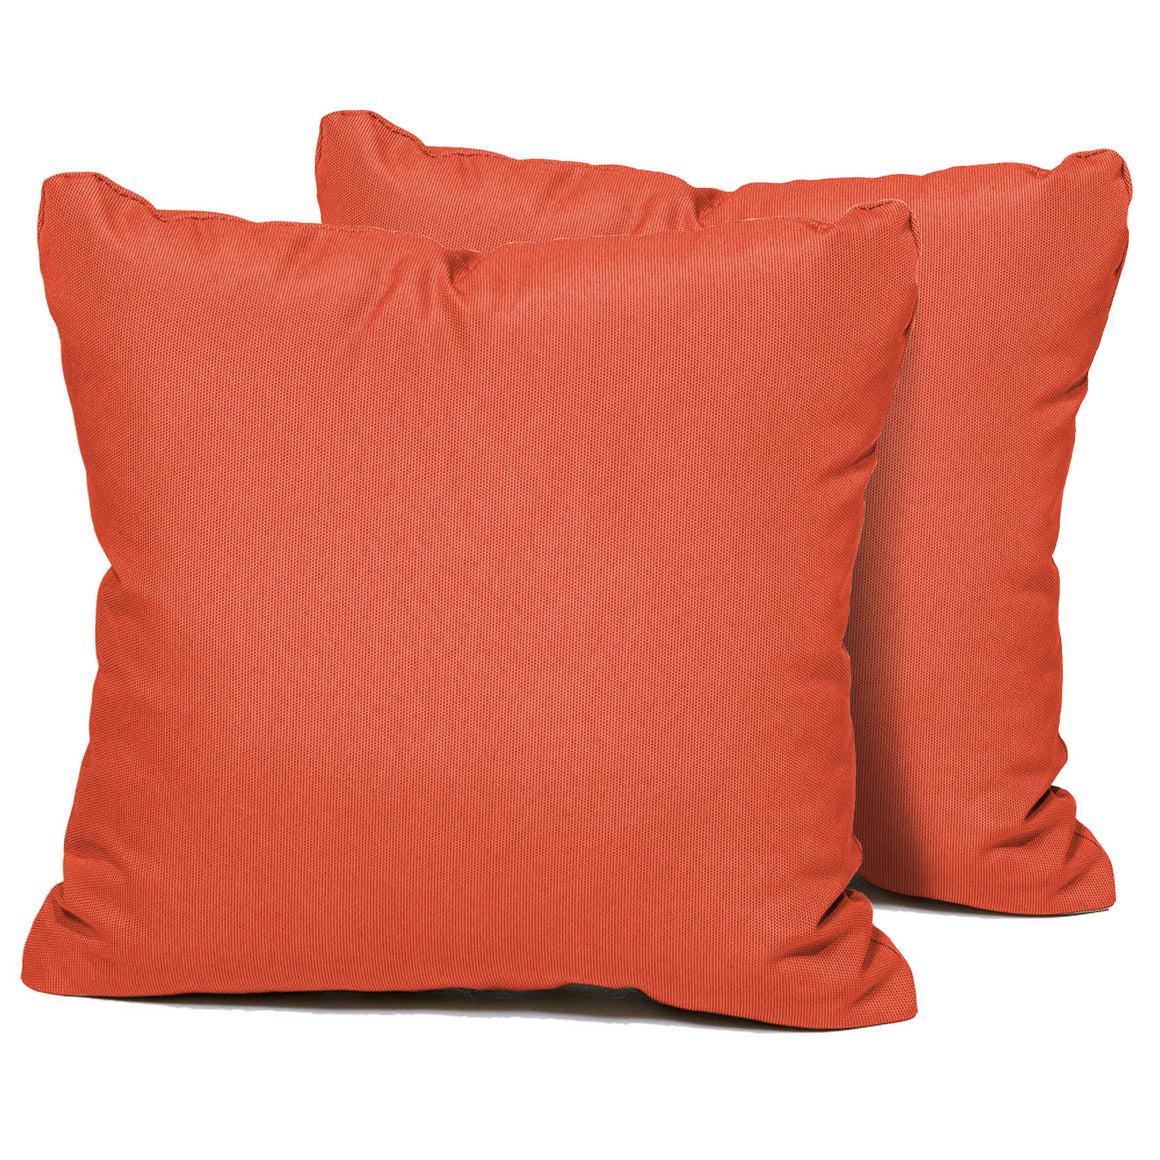 Tangerine Outdoor Throw Pillows Square Set of 2 , TK Classics- grayburd